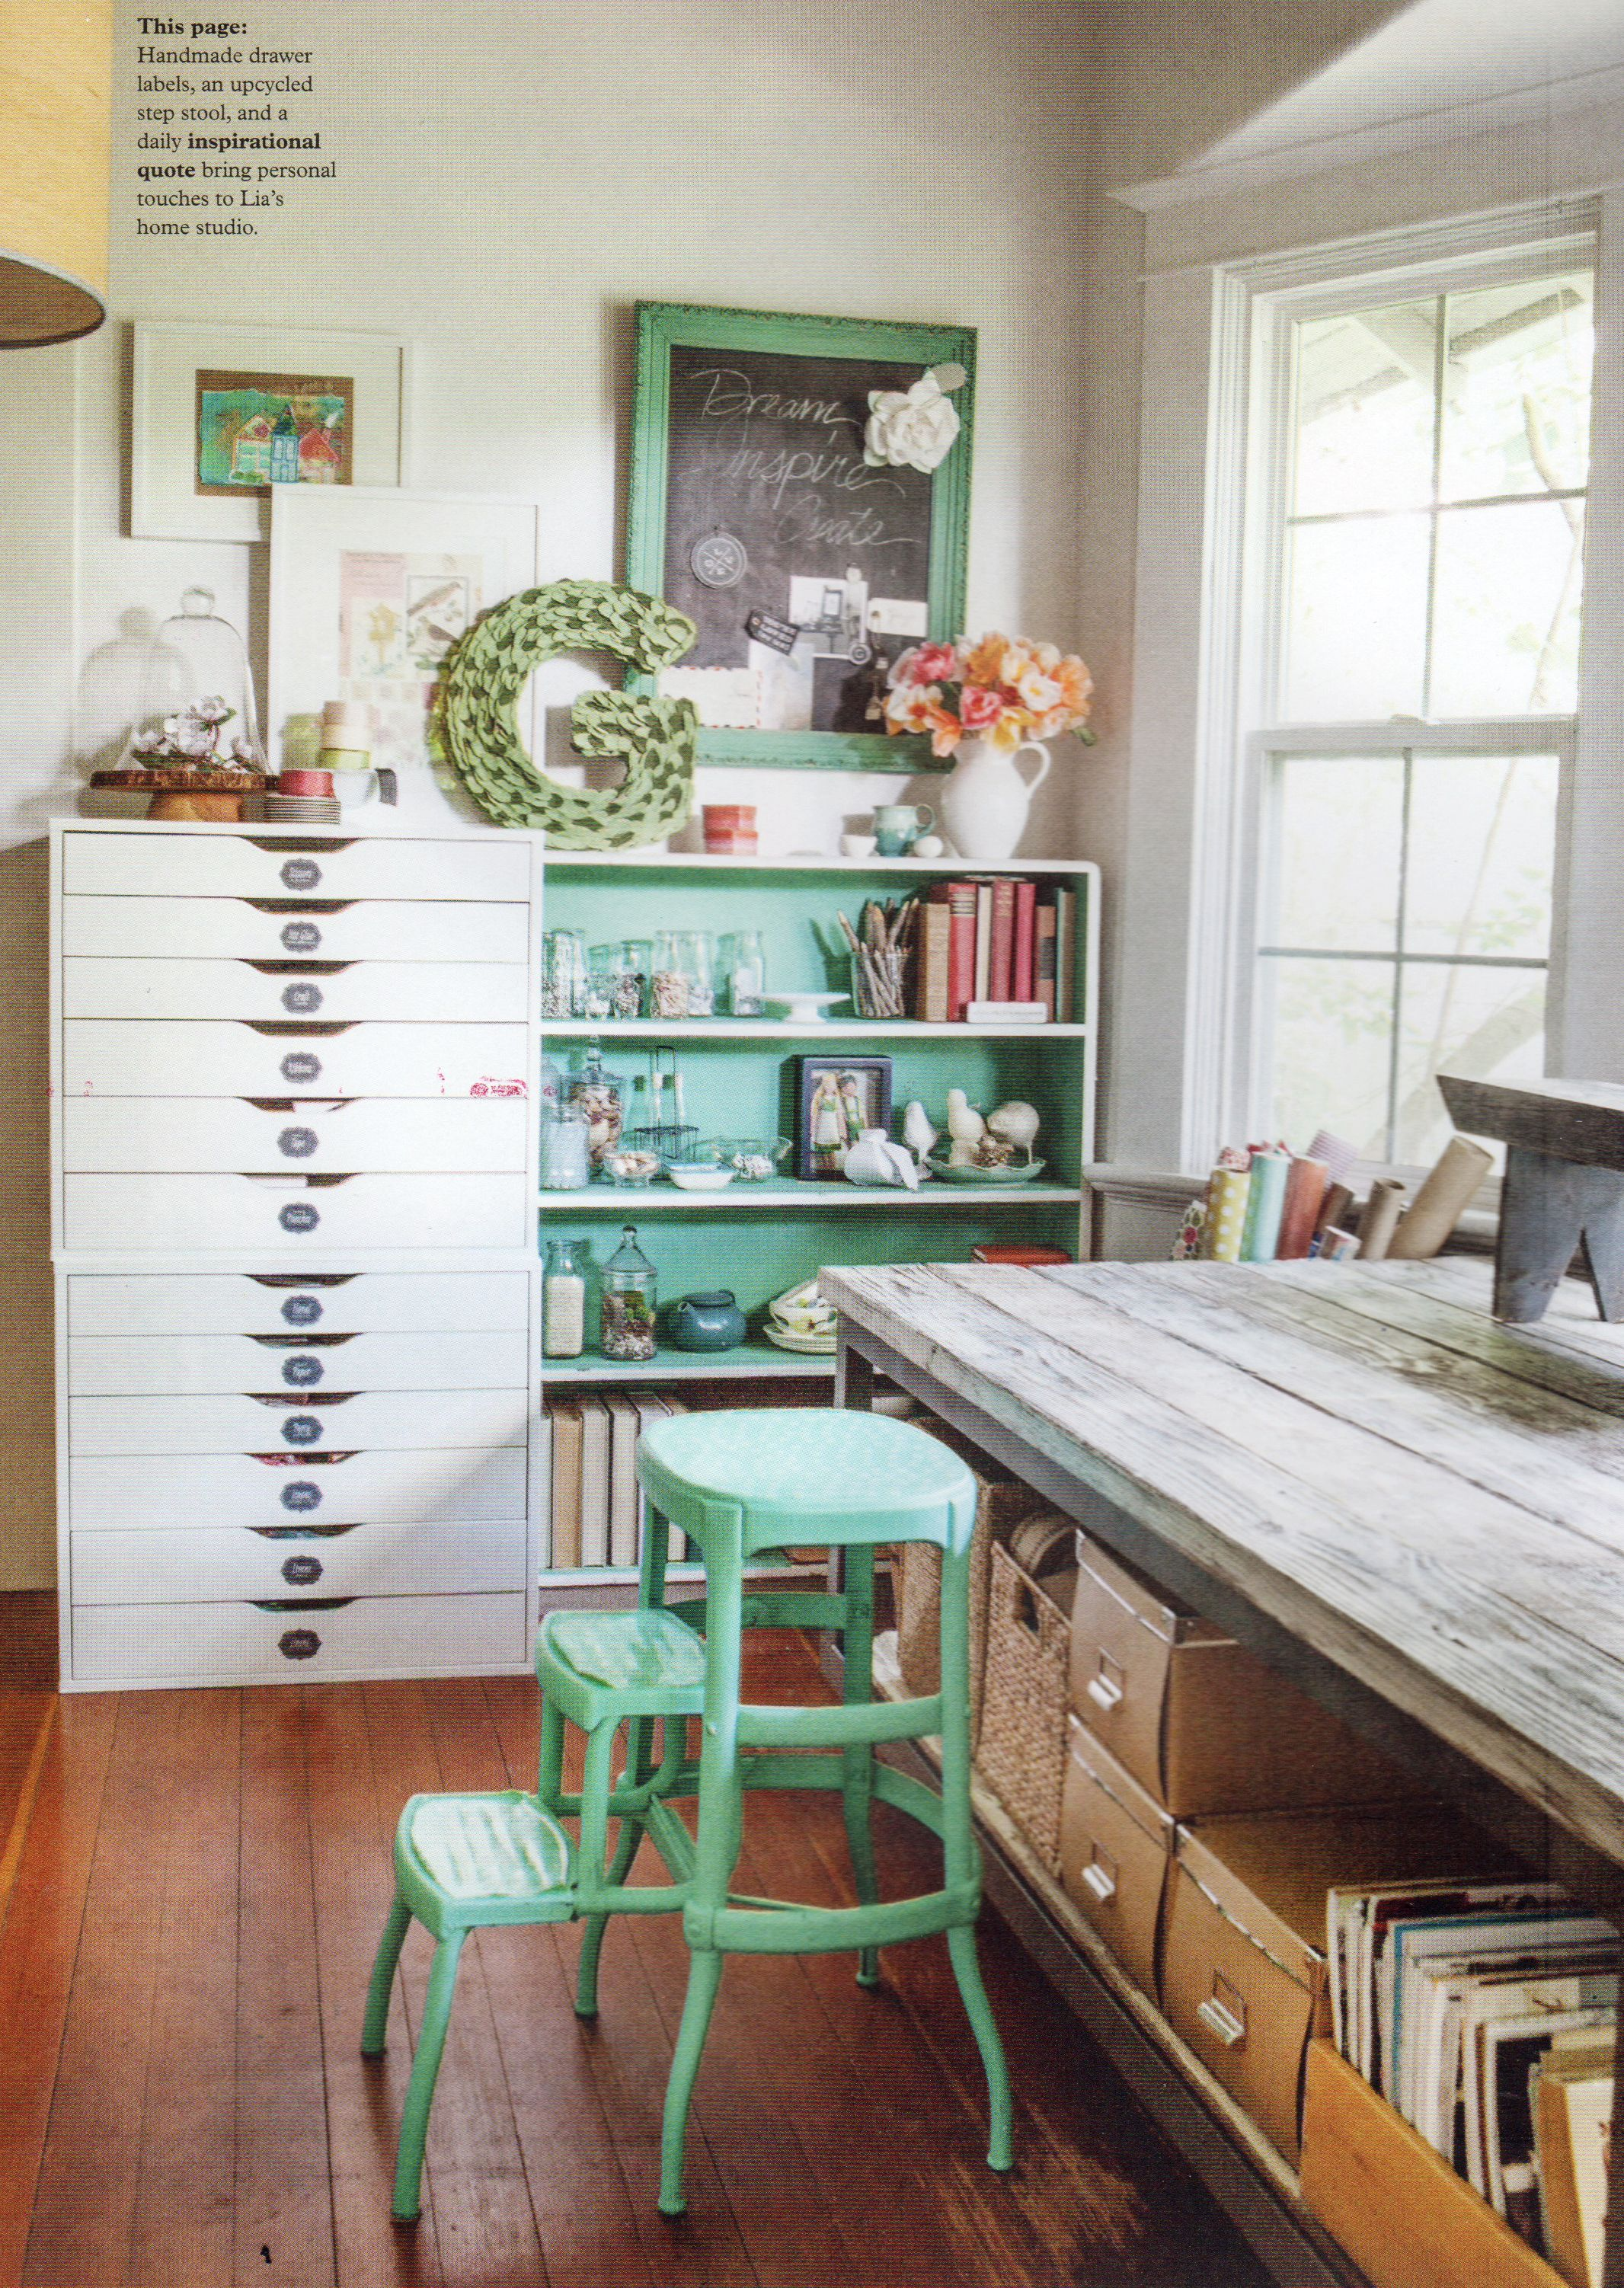 Nz Study Room: Workspace Inspired, Green Teal Colour, Wood And Neat With